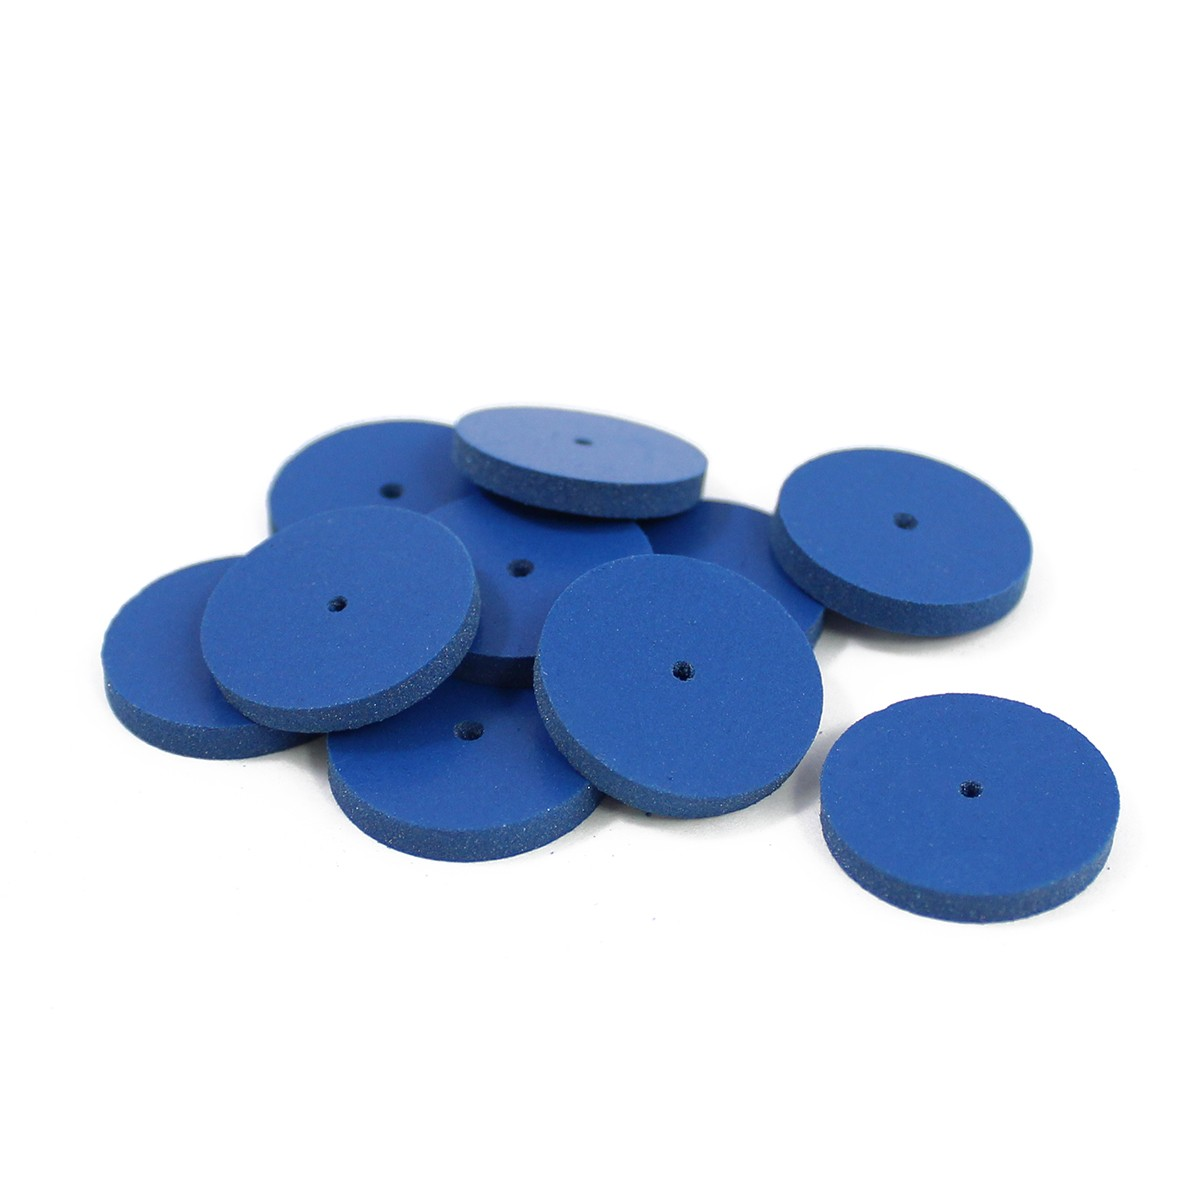 Blue Eve Miracle Wheels, Square Edge - 100